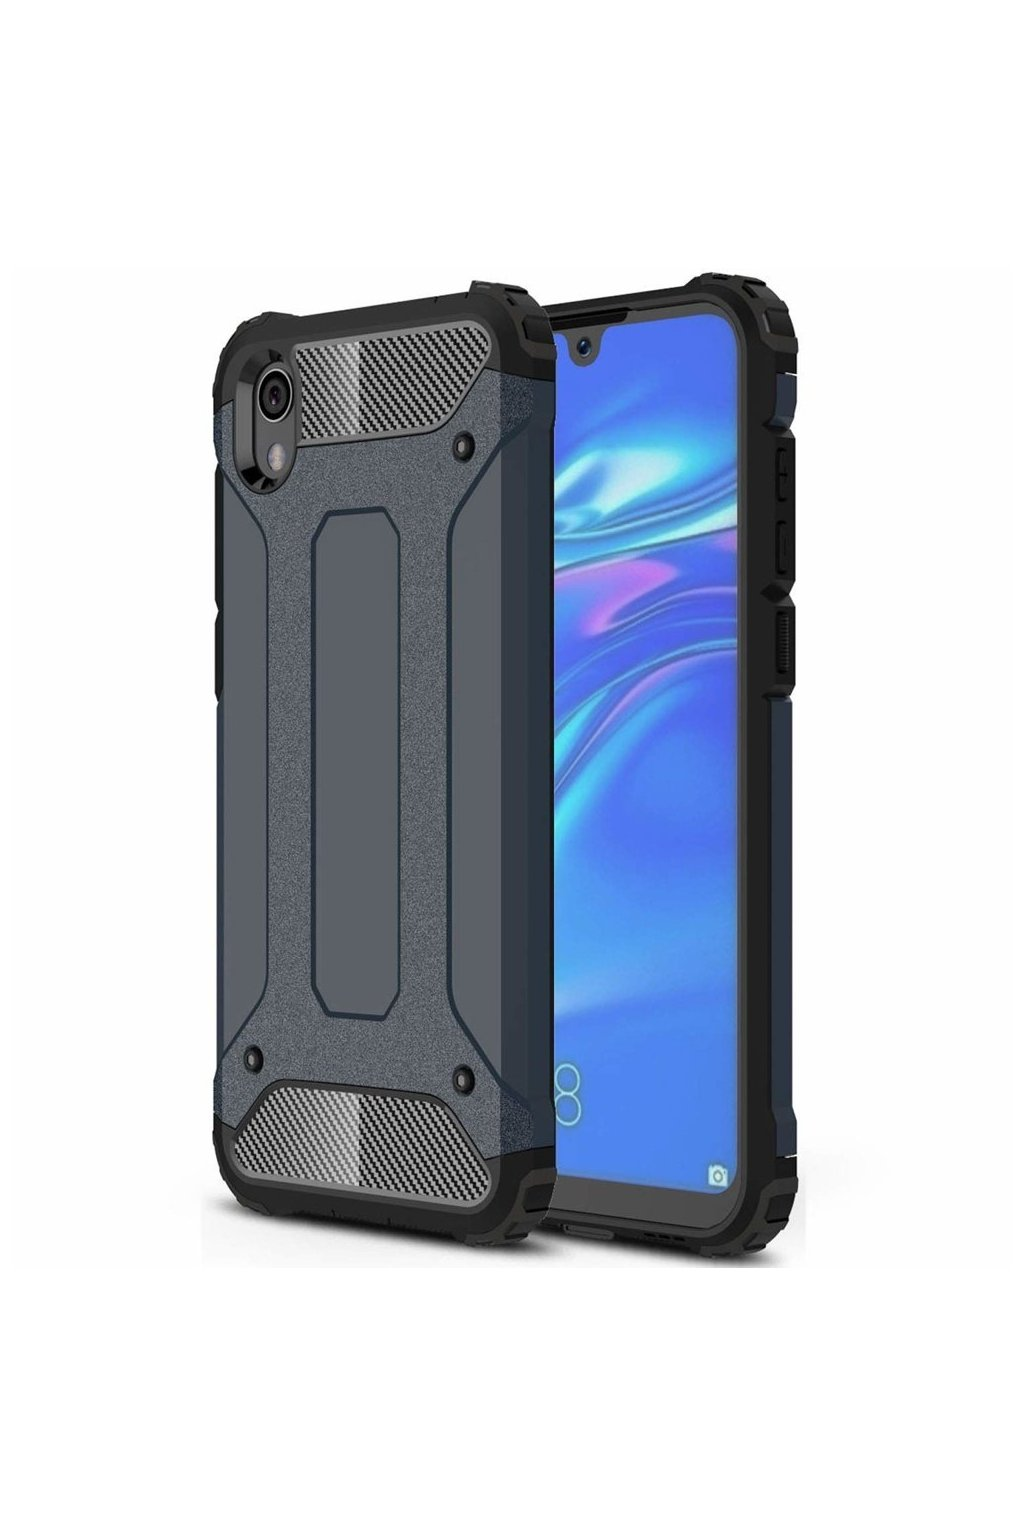 eng pl Hybrid Armor Case Tough Rugged Cover for Xiaomi Redmi 7A blue 51334 1